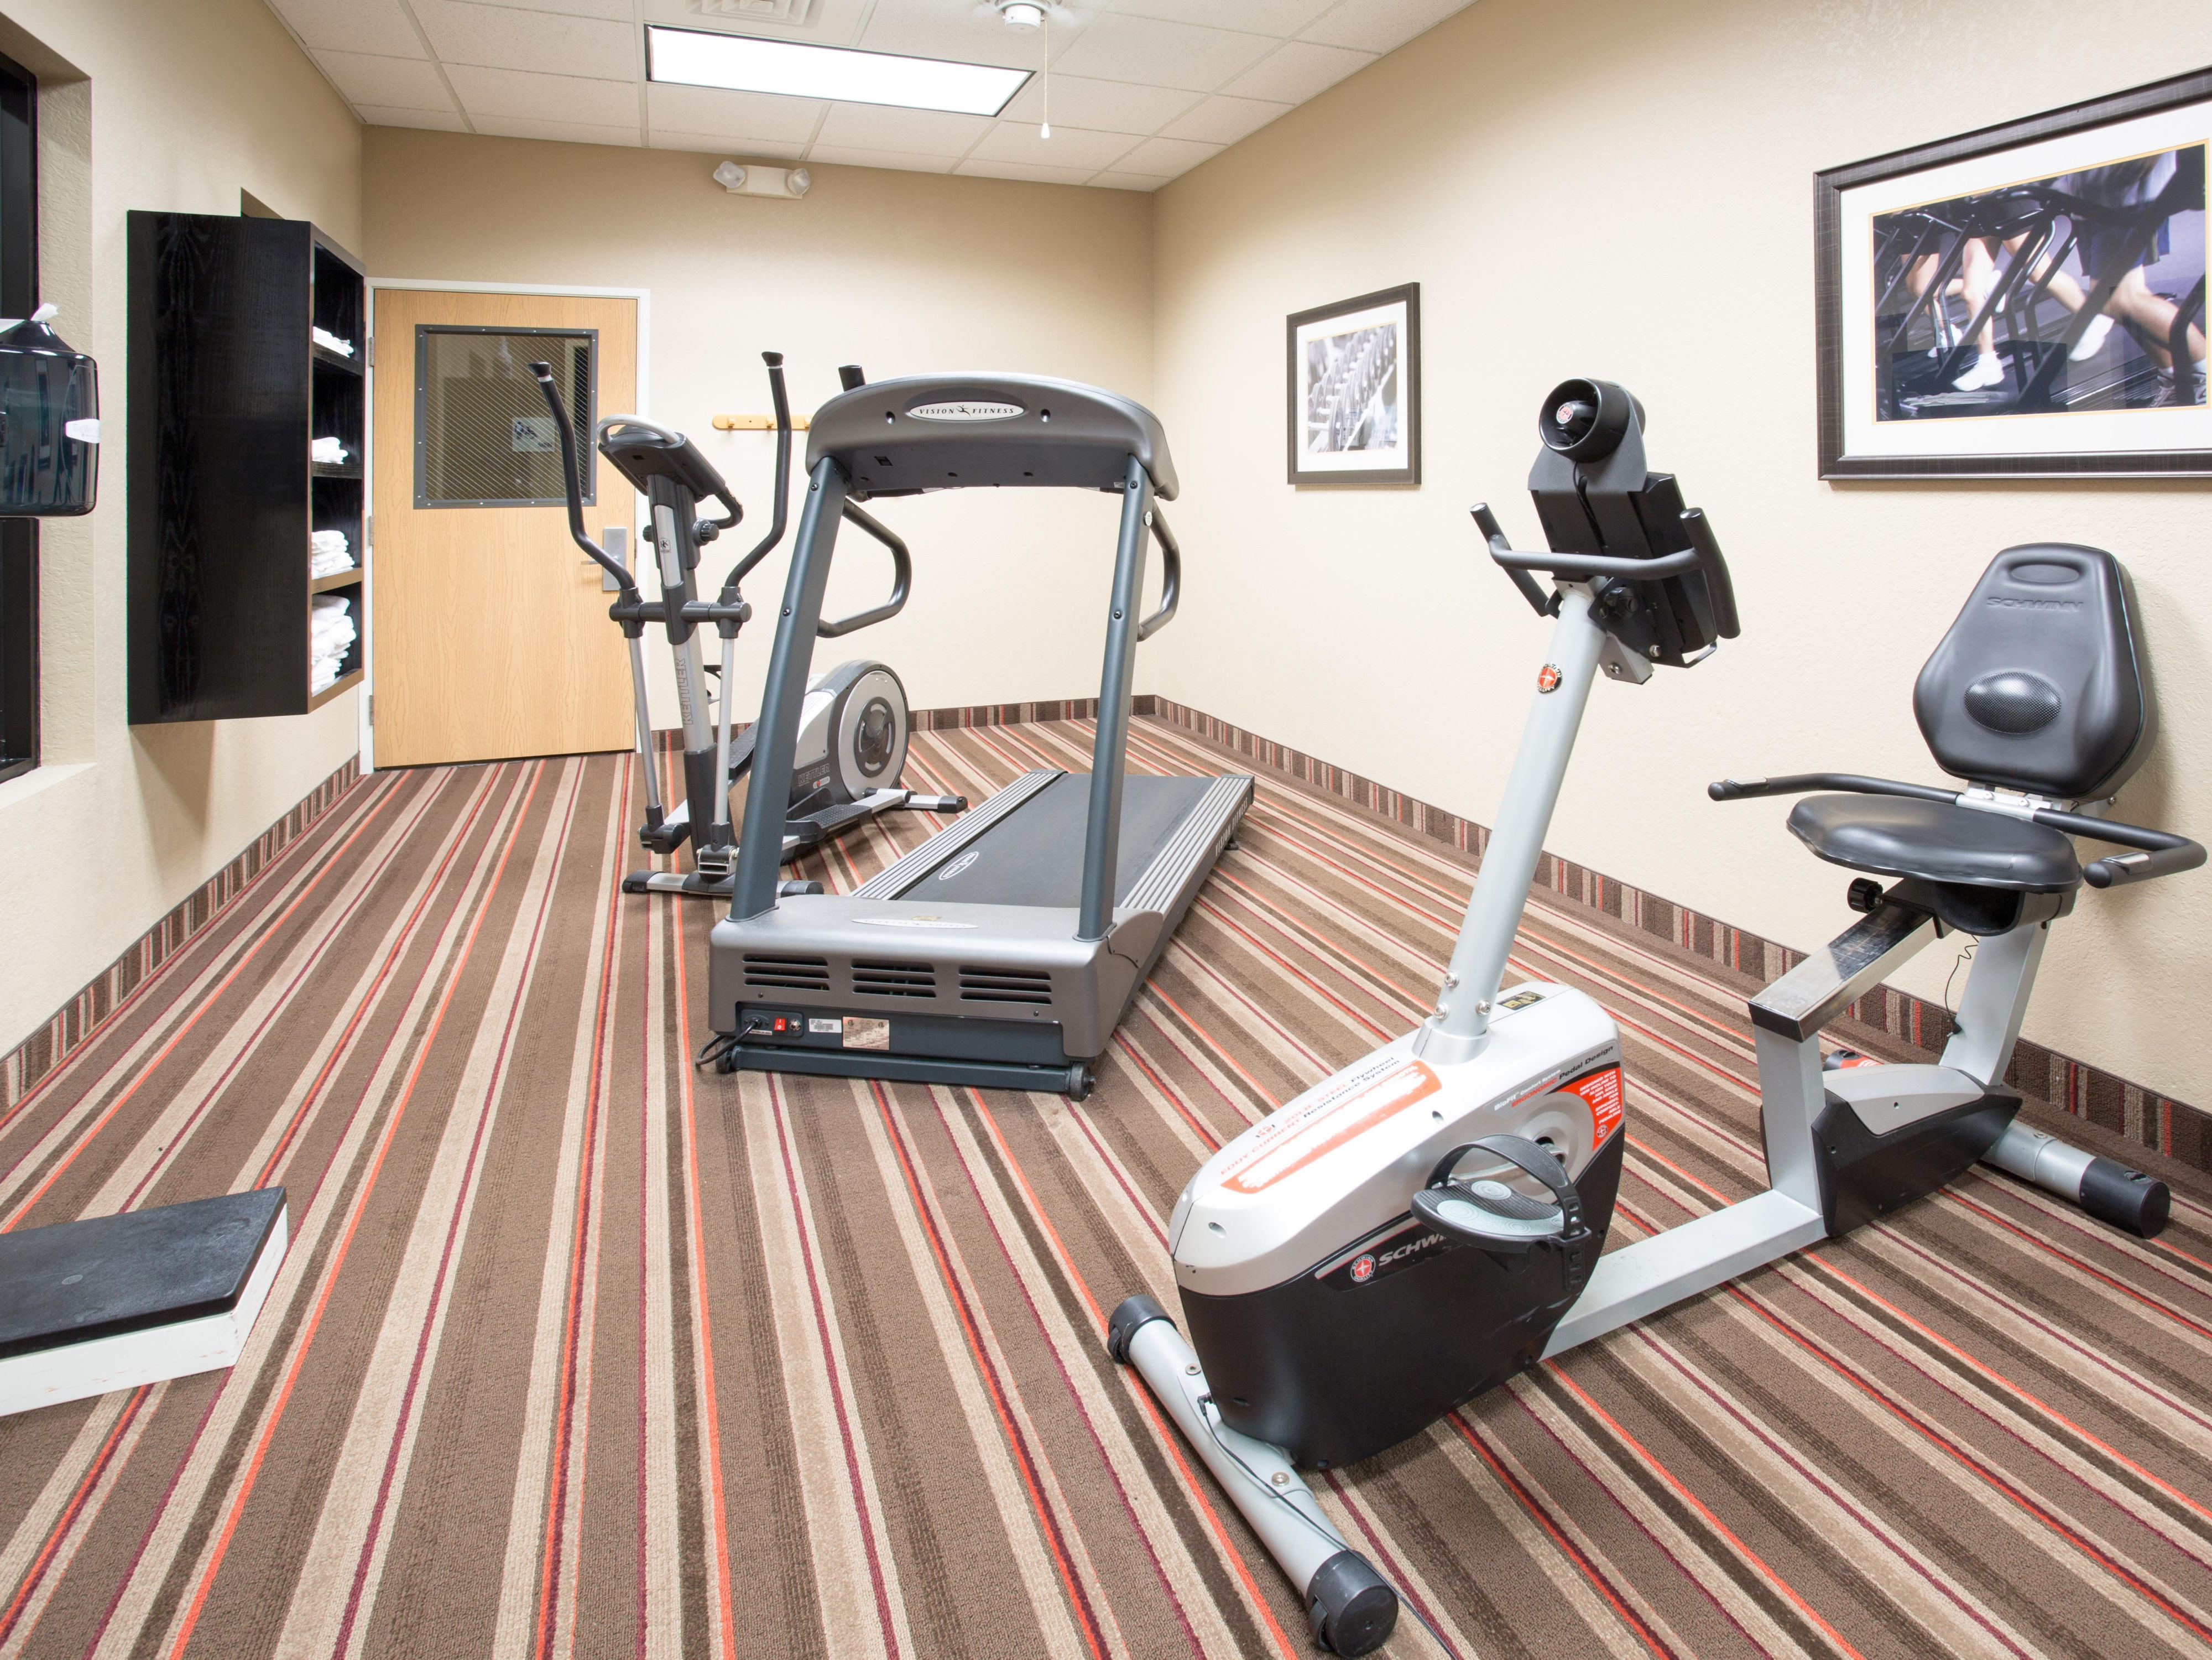 Holiday Inn Express Lexington Nebraska Fitness Center